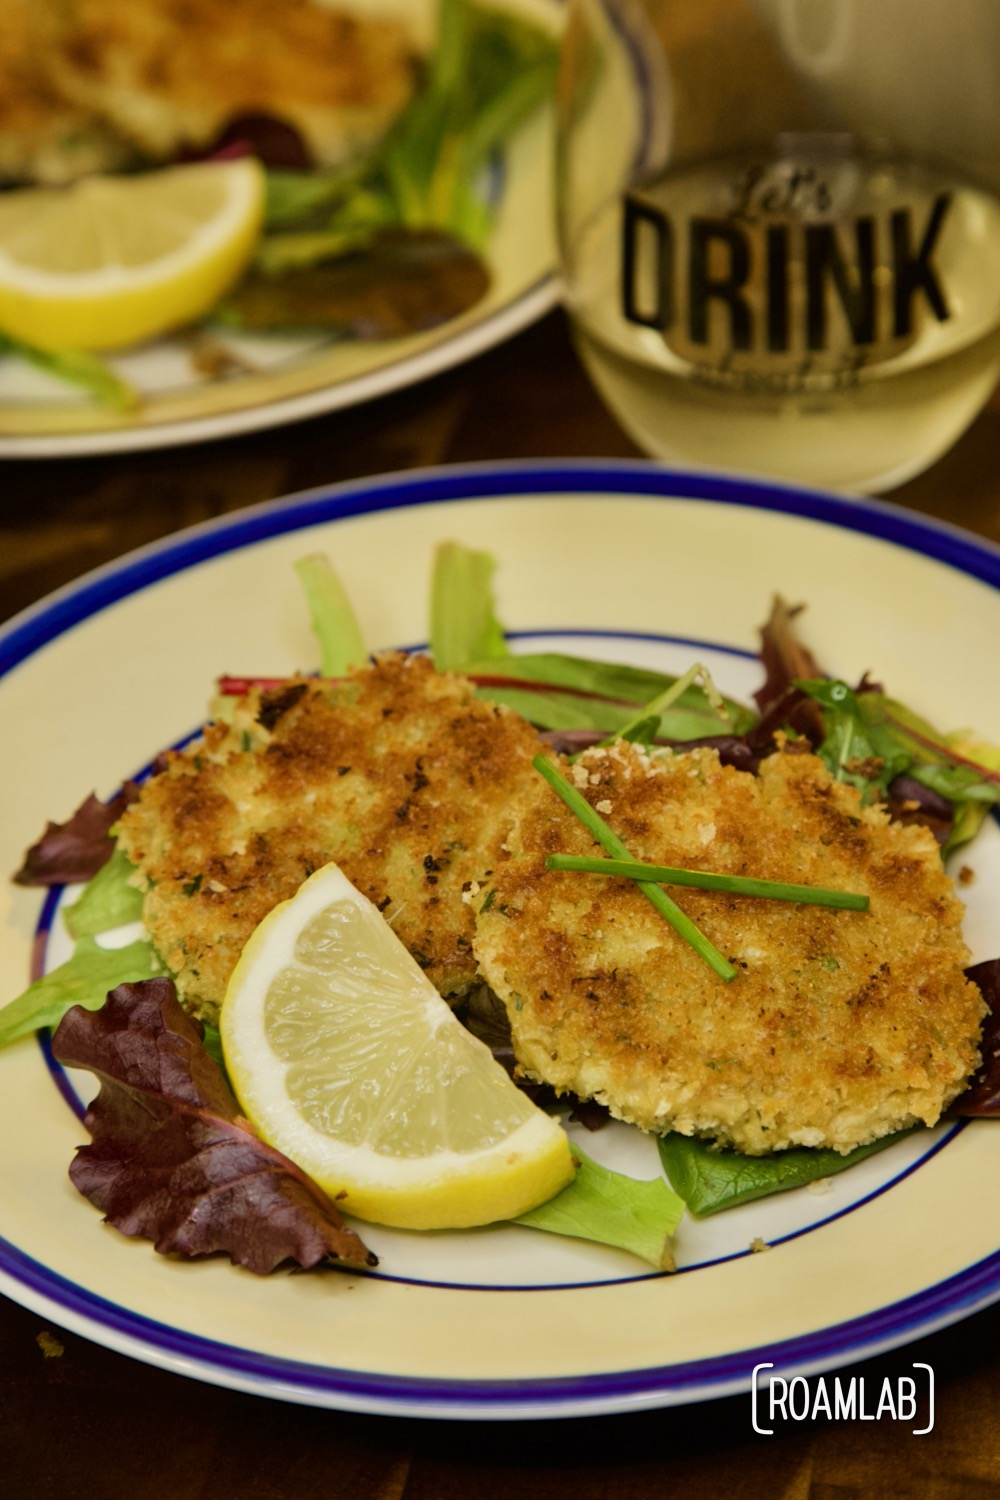 Spare can of crab meat? Try this simple, campfire approved, panko crusted crab cake recipe as an appetizer or pair it with a salad or soup for dinner.